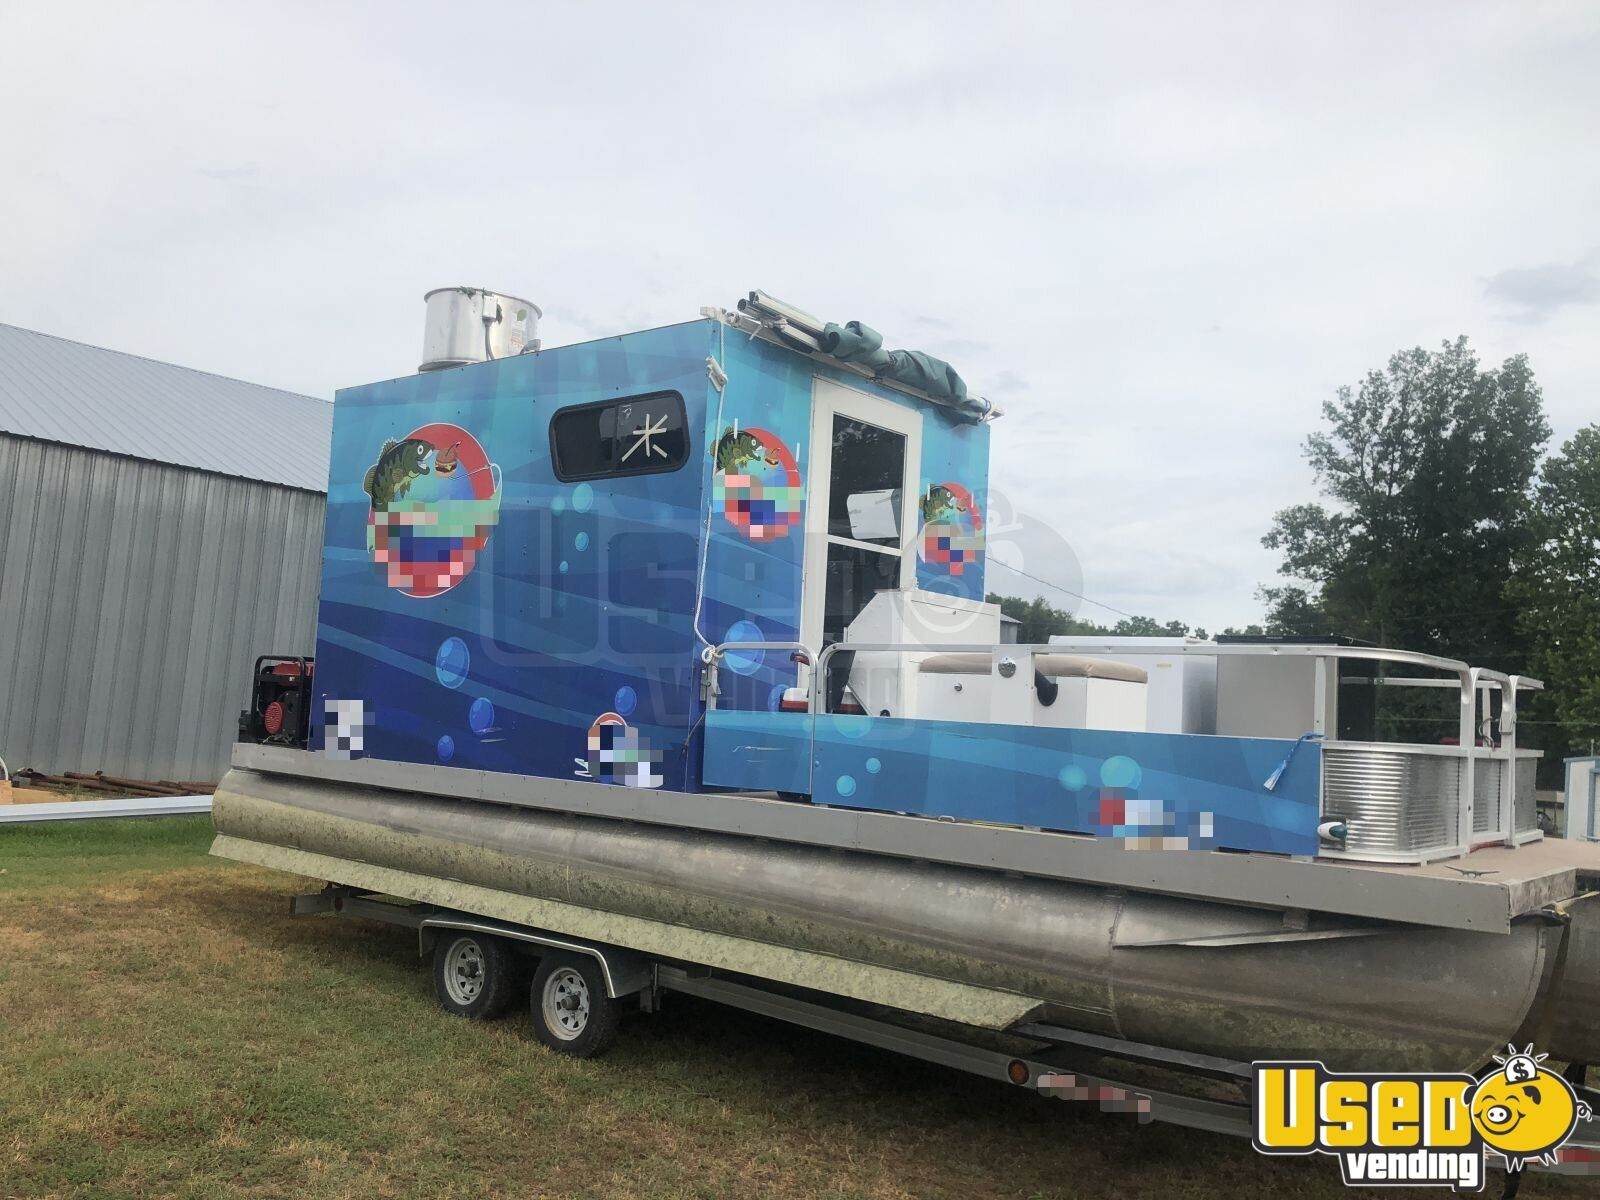 2015 - 24\' Food Concession Boat | Used Food Boat with Kitchen for ...